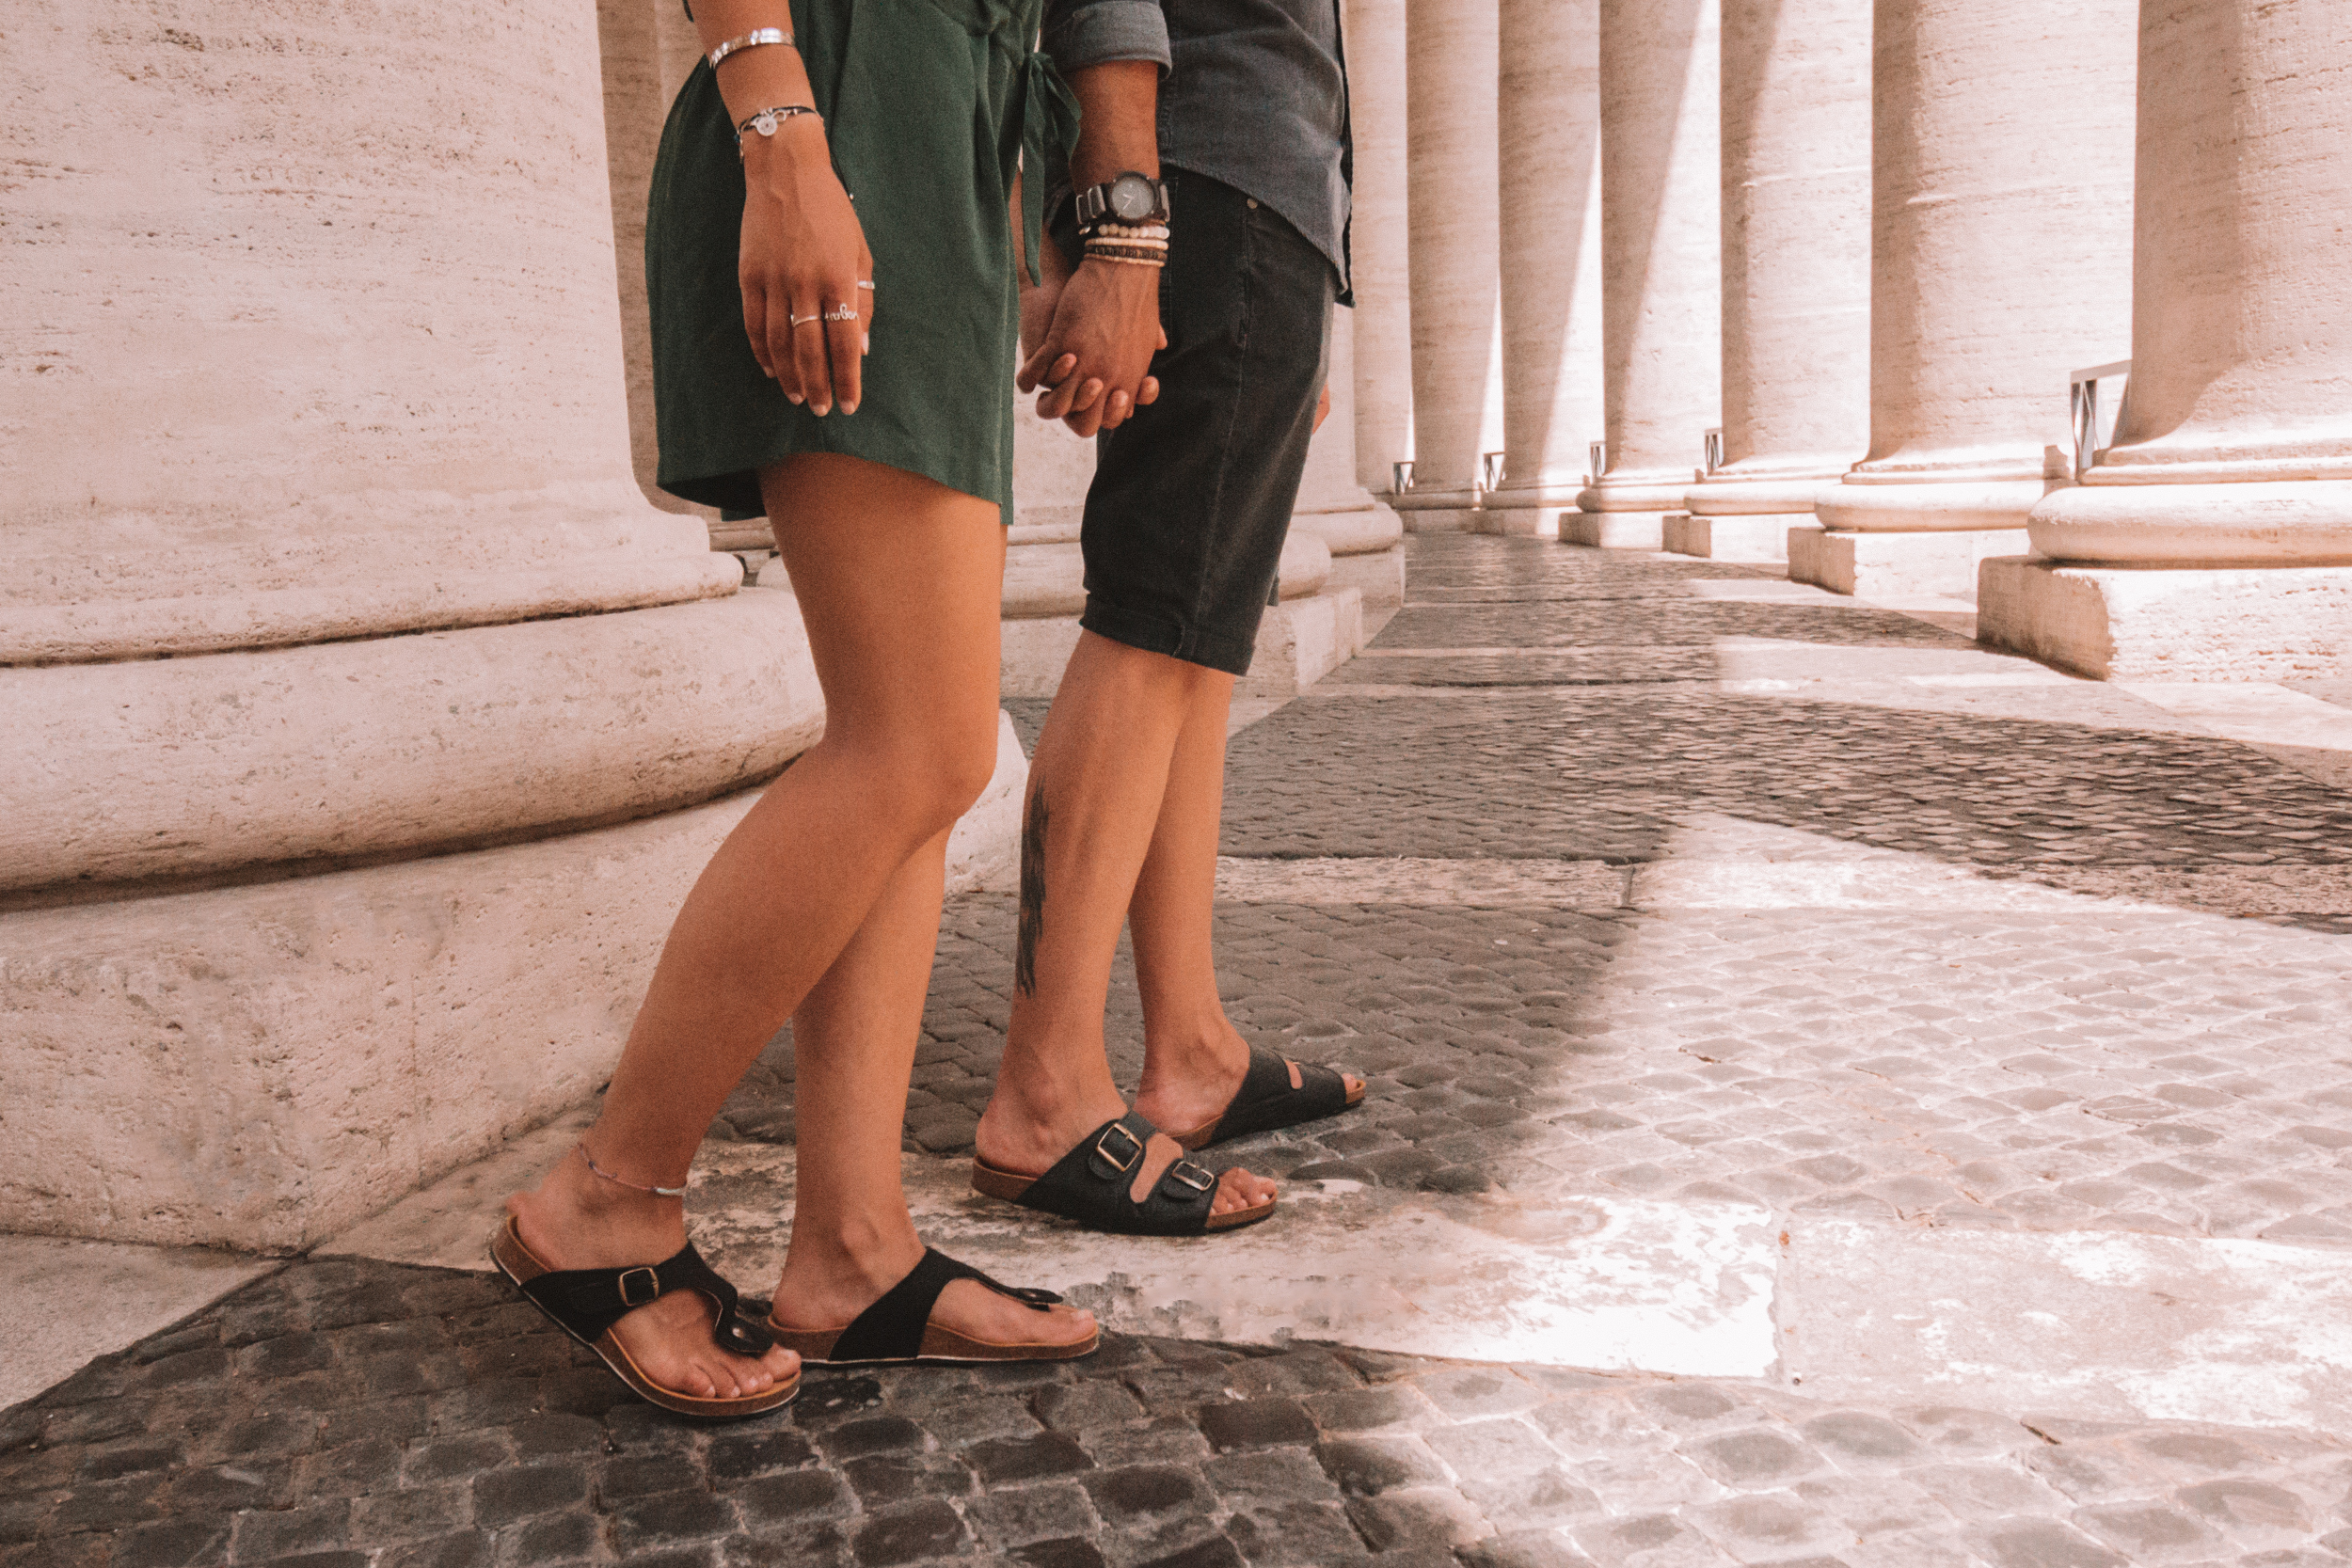 nae vegan shoes ethical fair trade sustainable rome vatican italy couple photography travel slow fashion sandals men woman